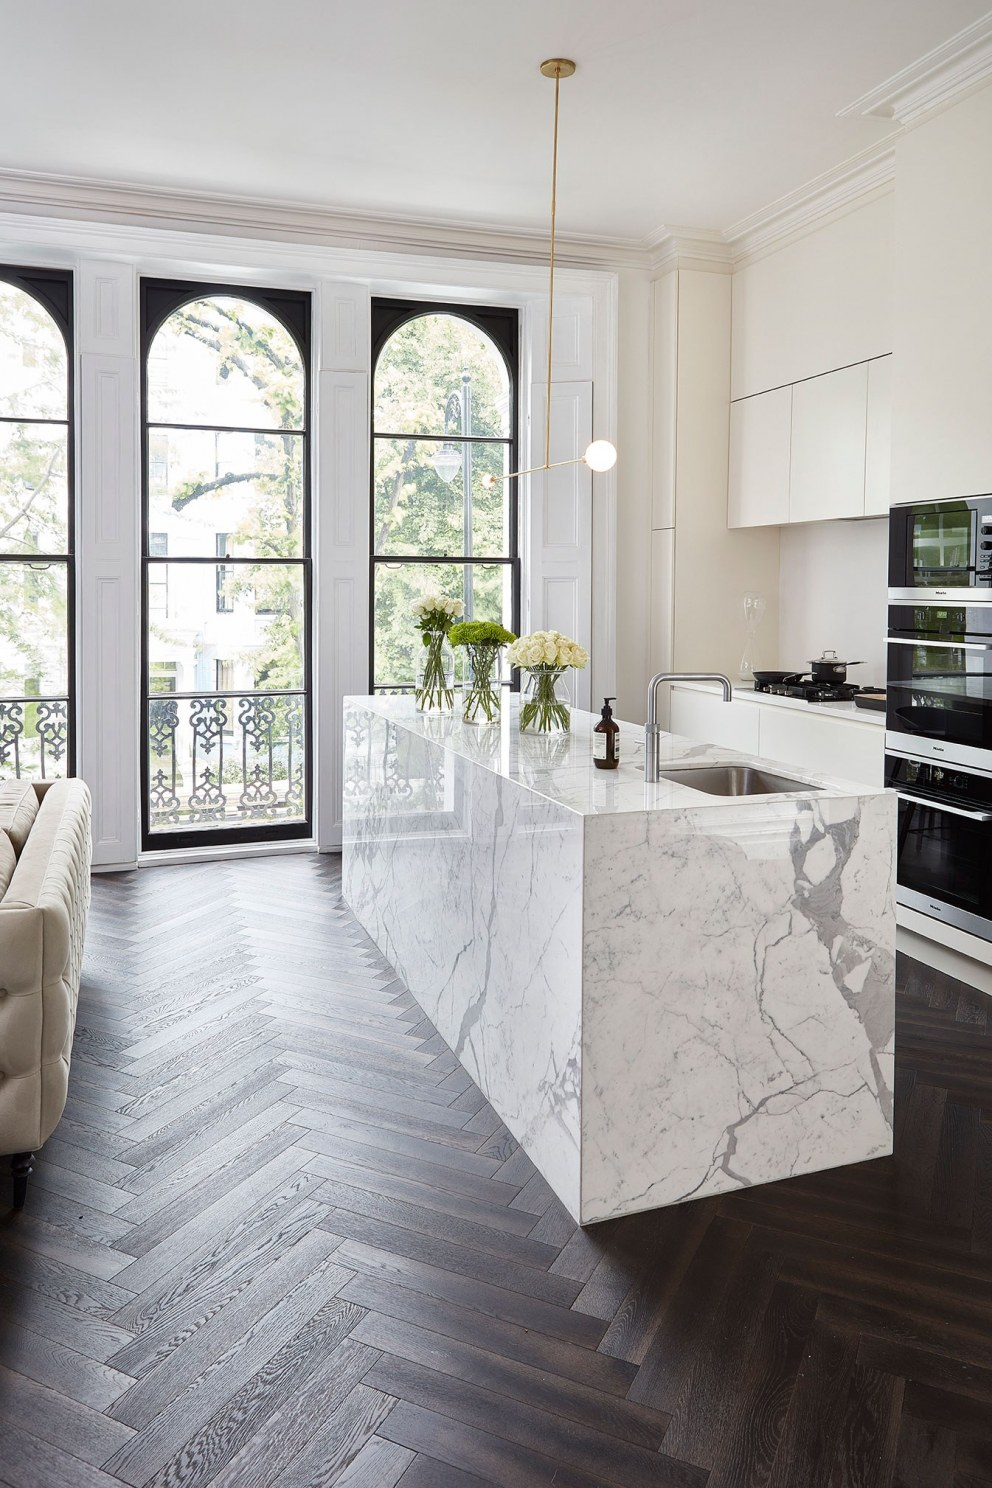 Notting Hill home | Kitchen Living 2 | Interior Designers